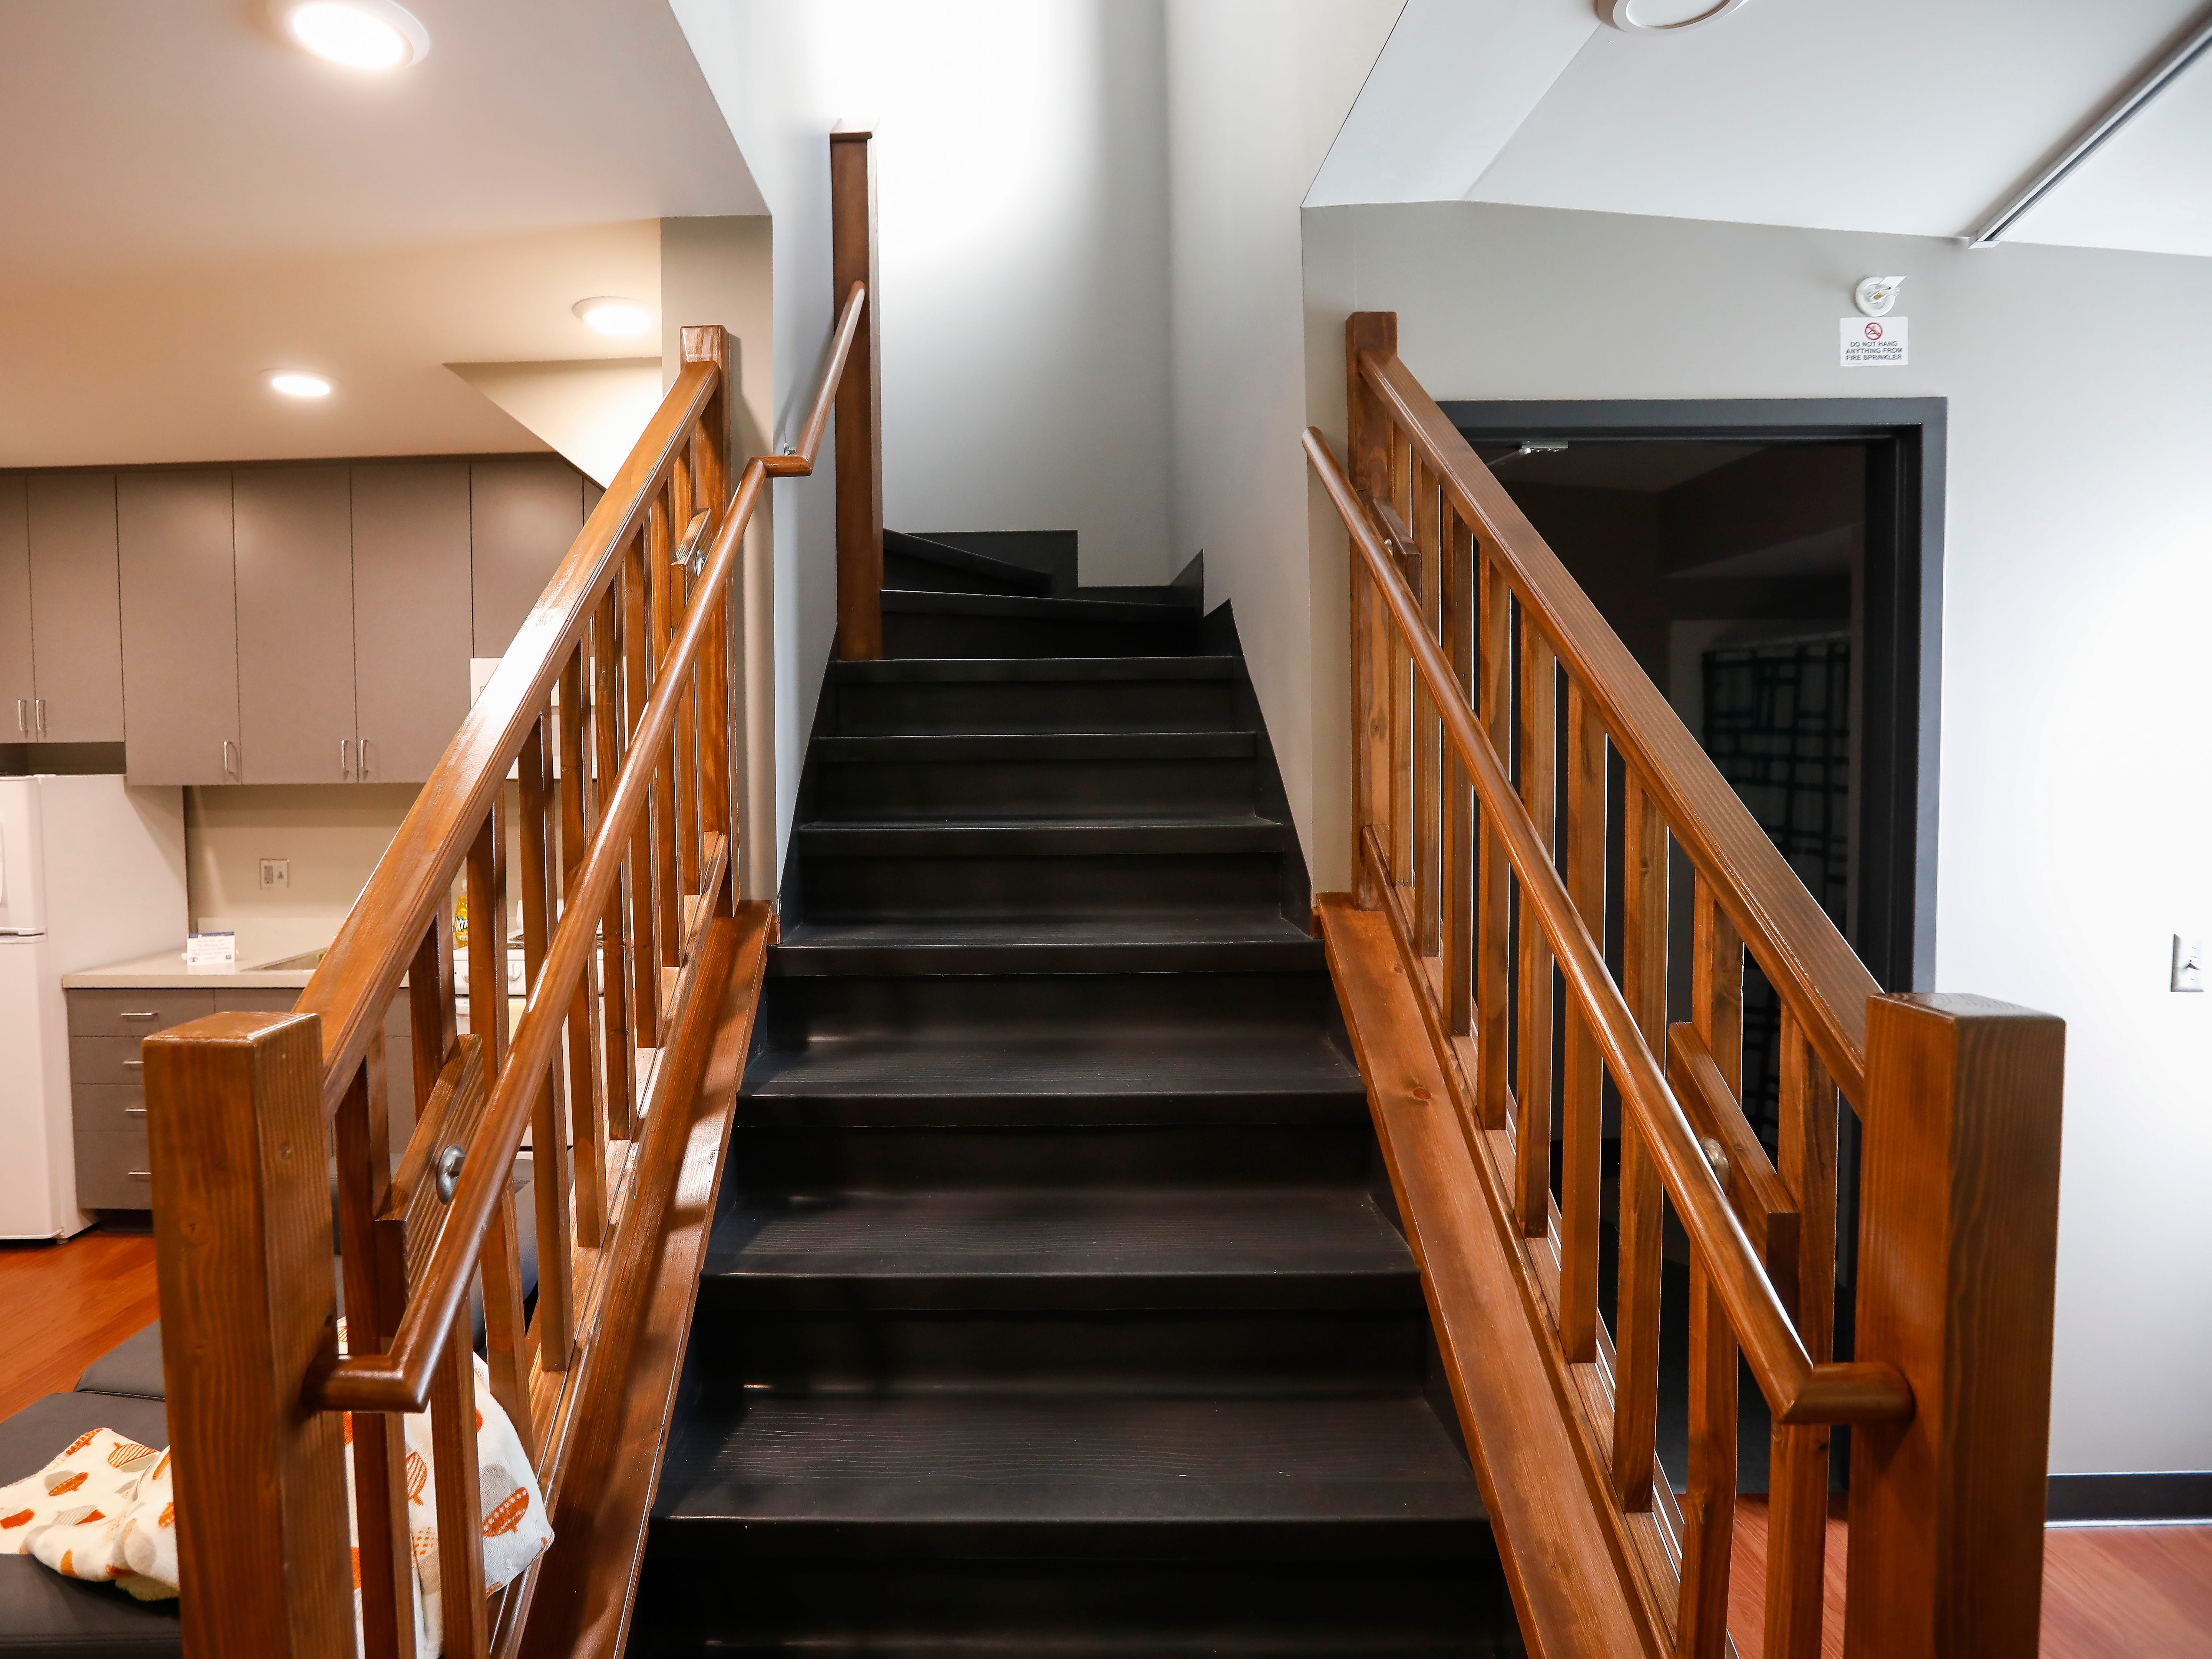 A stairway leads up to the children's rooms inside one of the apartments at The Kitchen's new Emergency Shelter located at 1855 E. Chestnut Expressway.